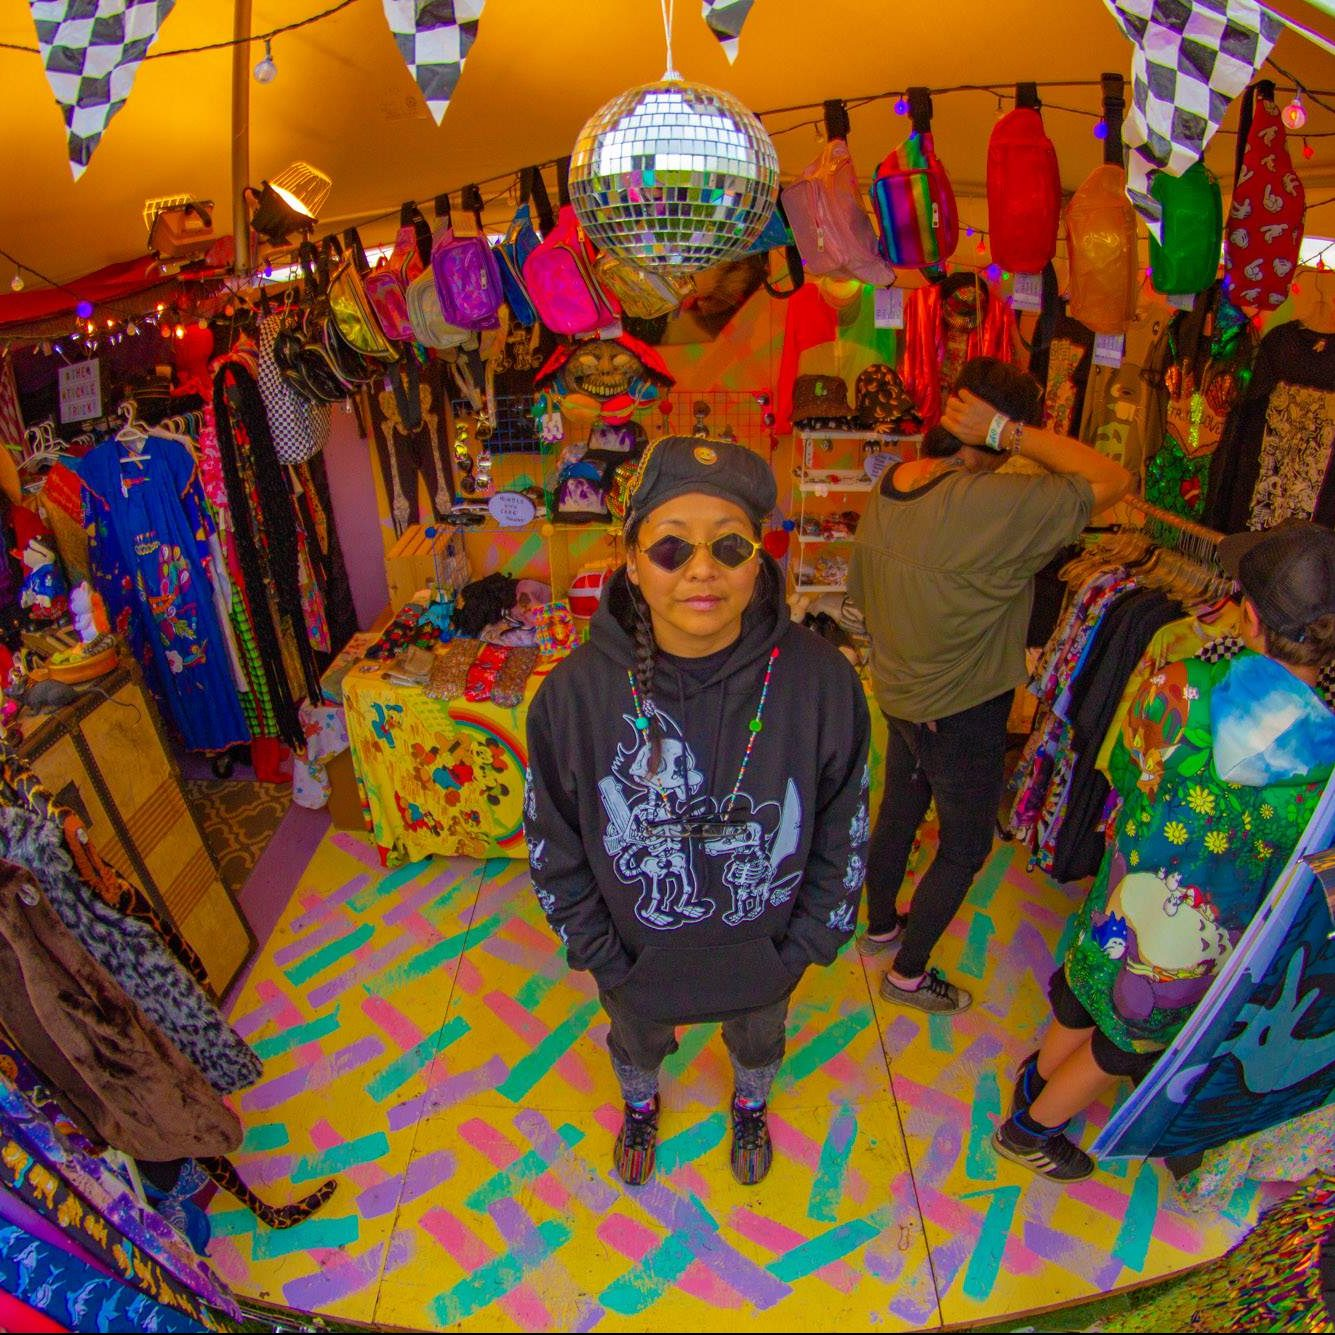 A person wearing sunglasses and a black hoodie is standing in the crenter of the frame. They are in a tent thats walls are lined with colourful ravewear. The floor is a colourful patterned carpet. A disco ball and checkered flags hang above their head.